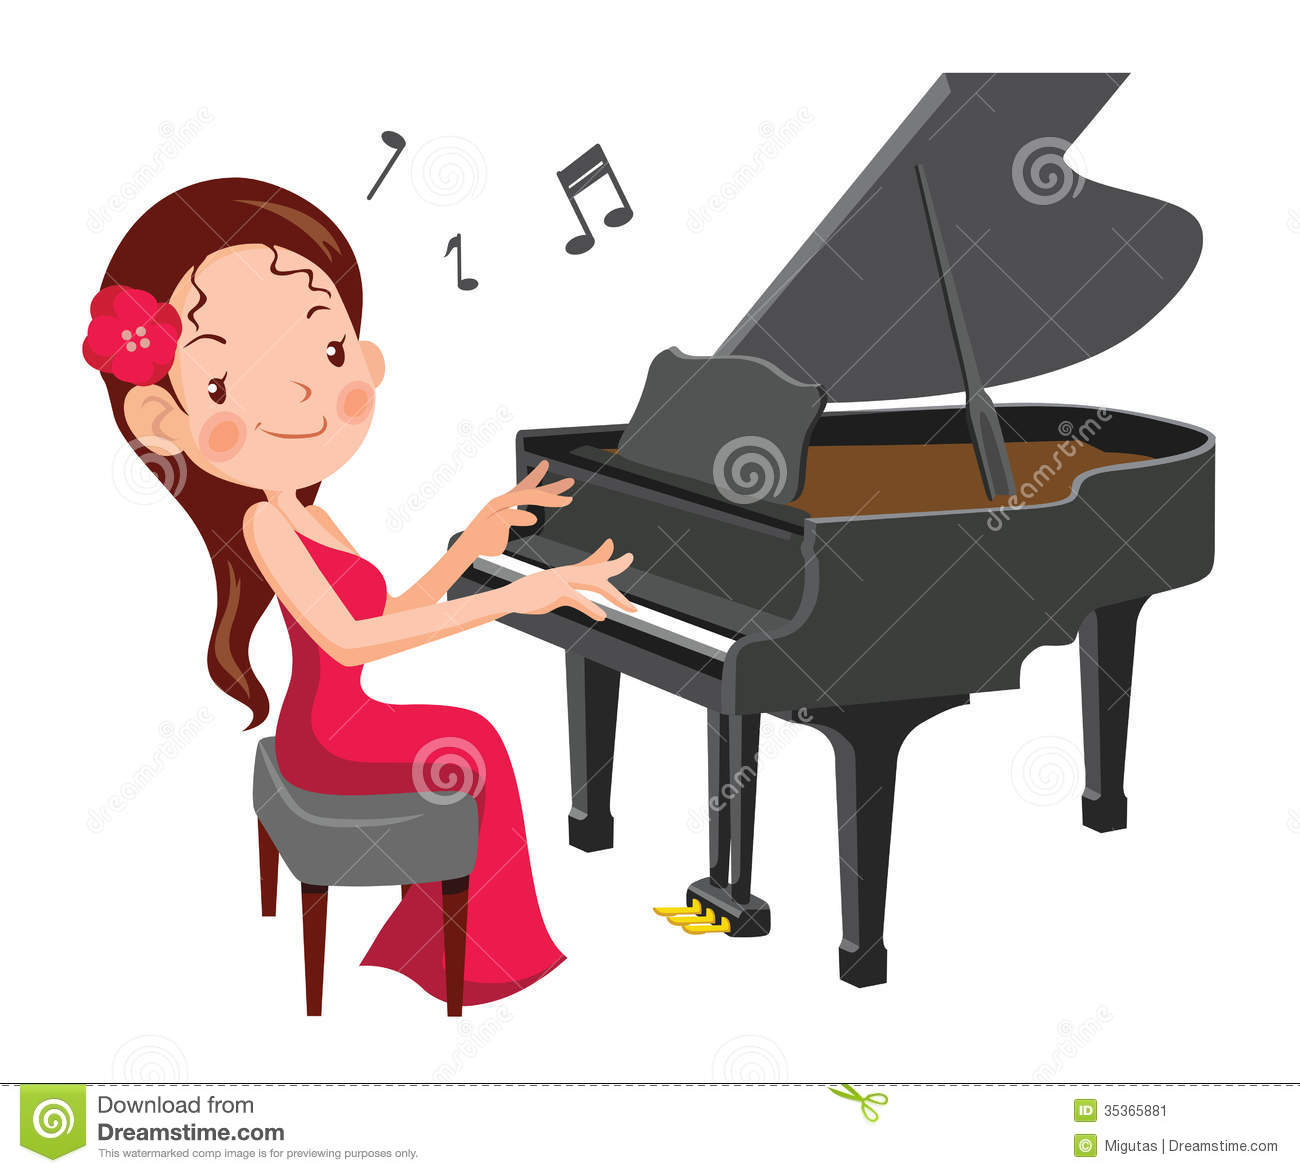 Piano player clipart - Clipground